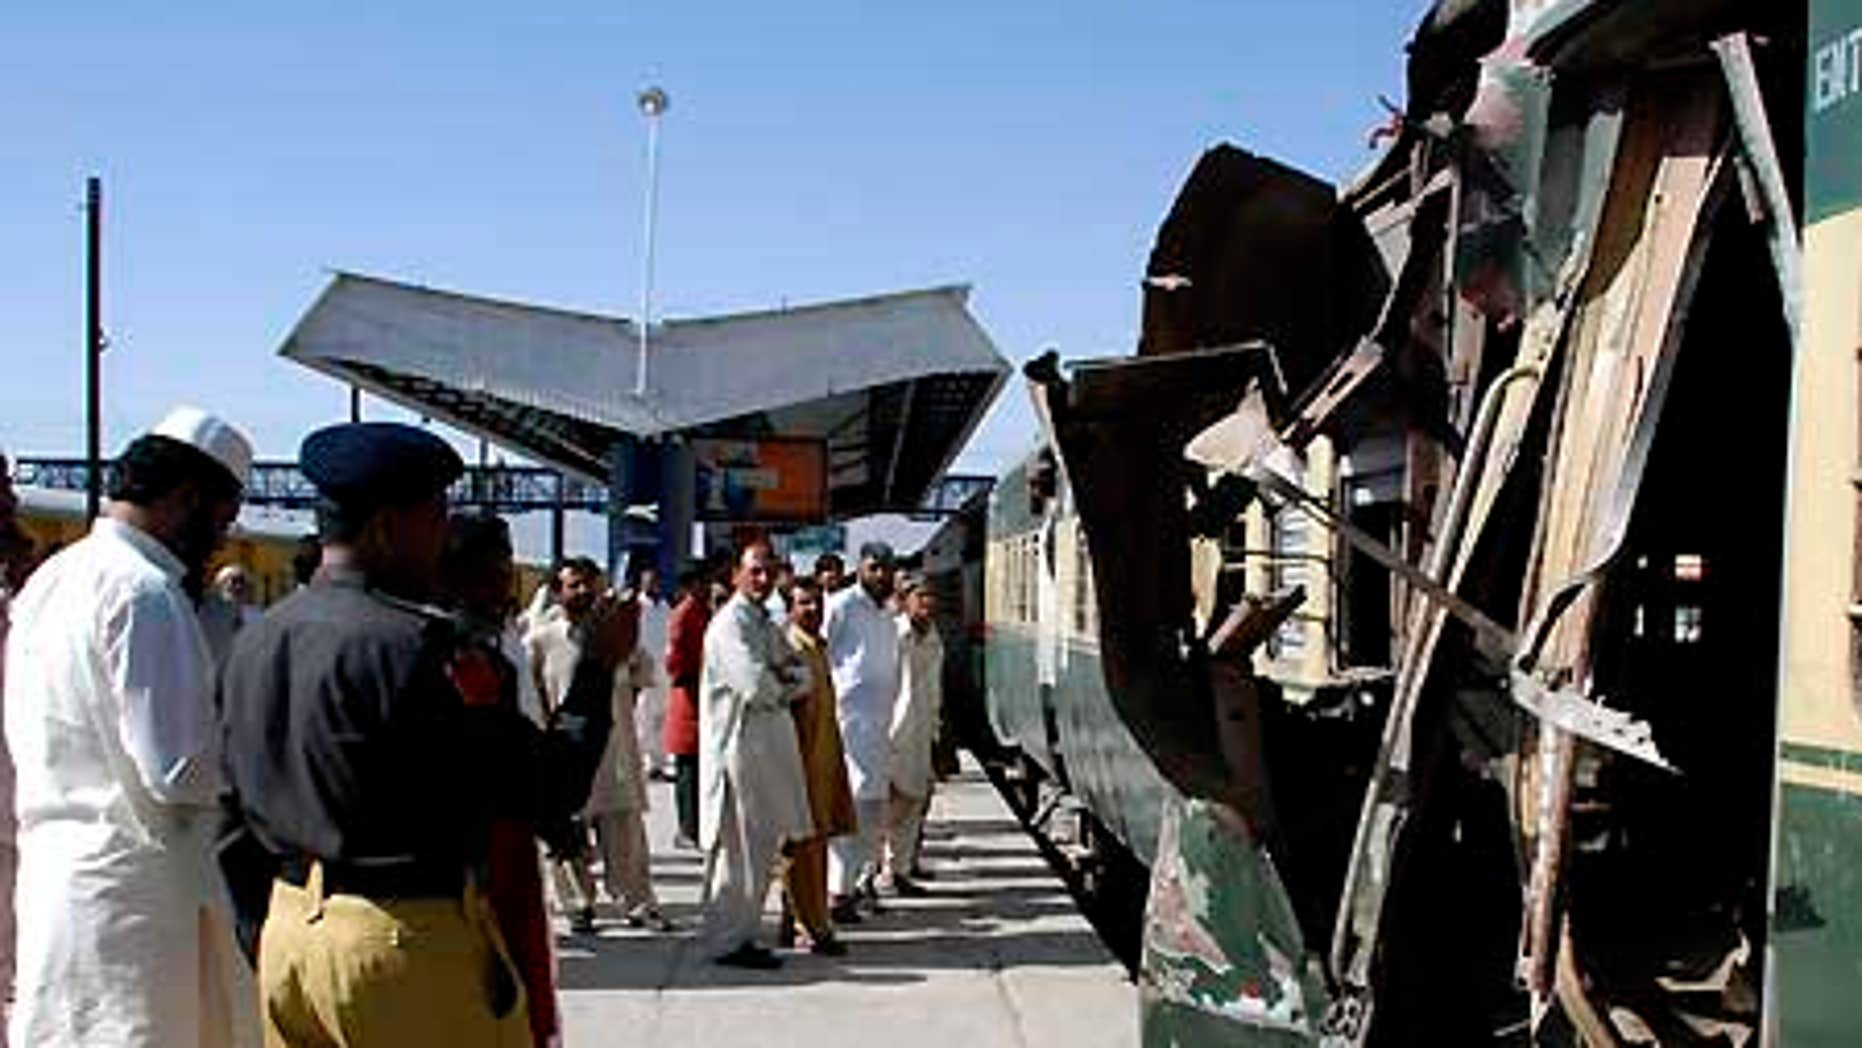 June 11: People look at a compartment of a passenger train damaged by a bomb blast in Quetta, Pakistan.